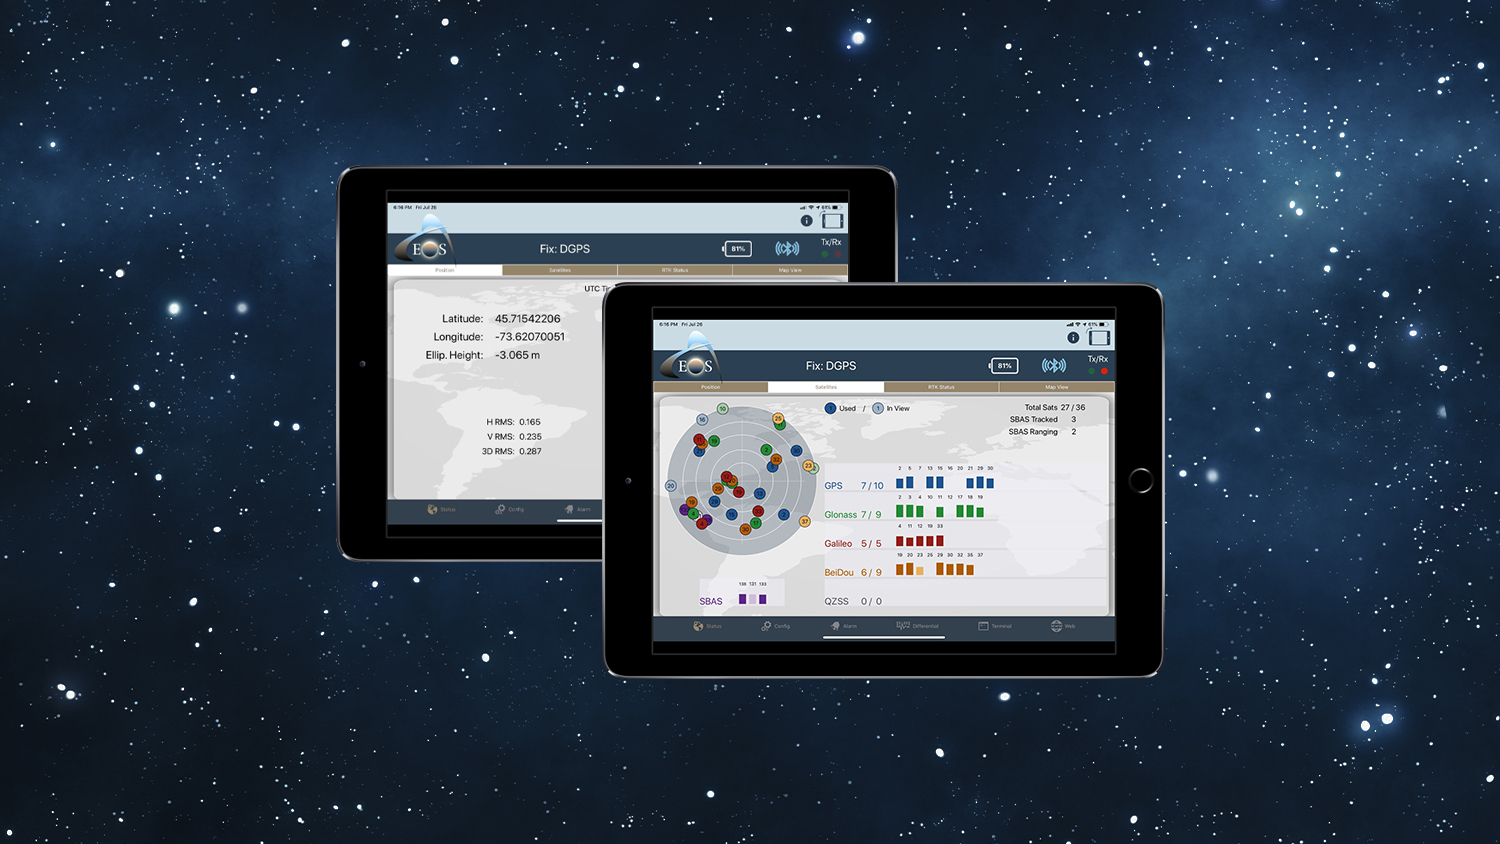 How to Use the Four Constellations for Sub-Meter GNSS Mapping- GPS, Glonass, Galileo, BeiDou GIS